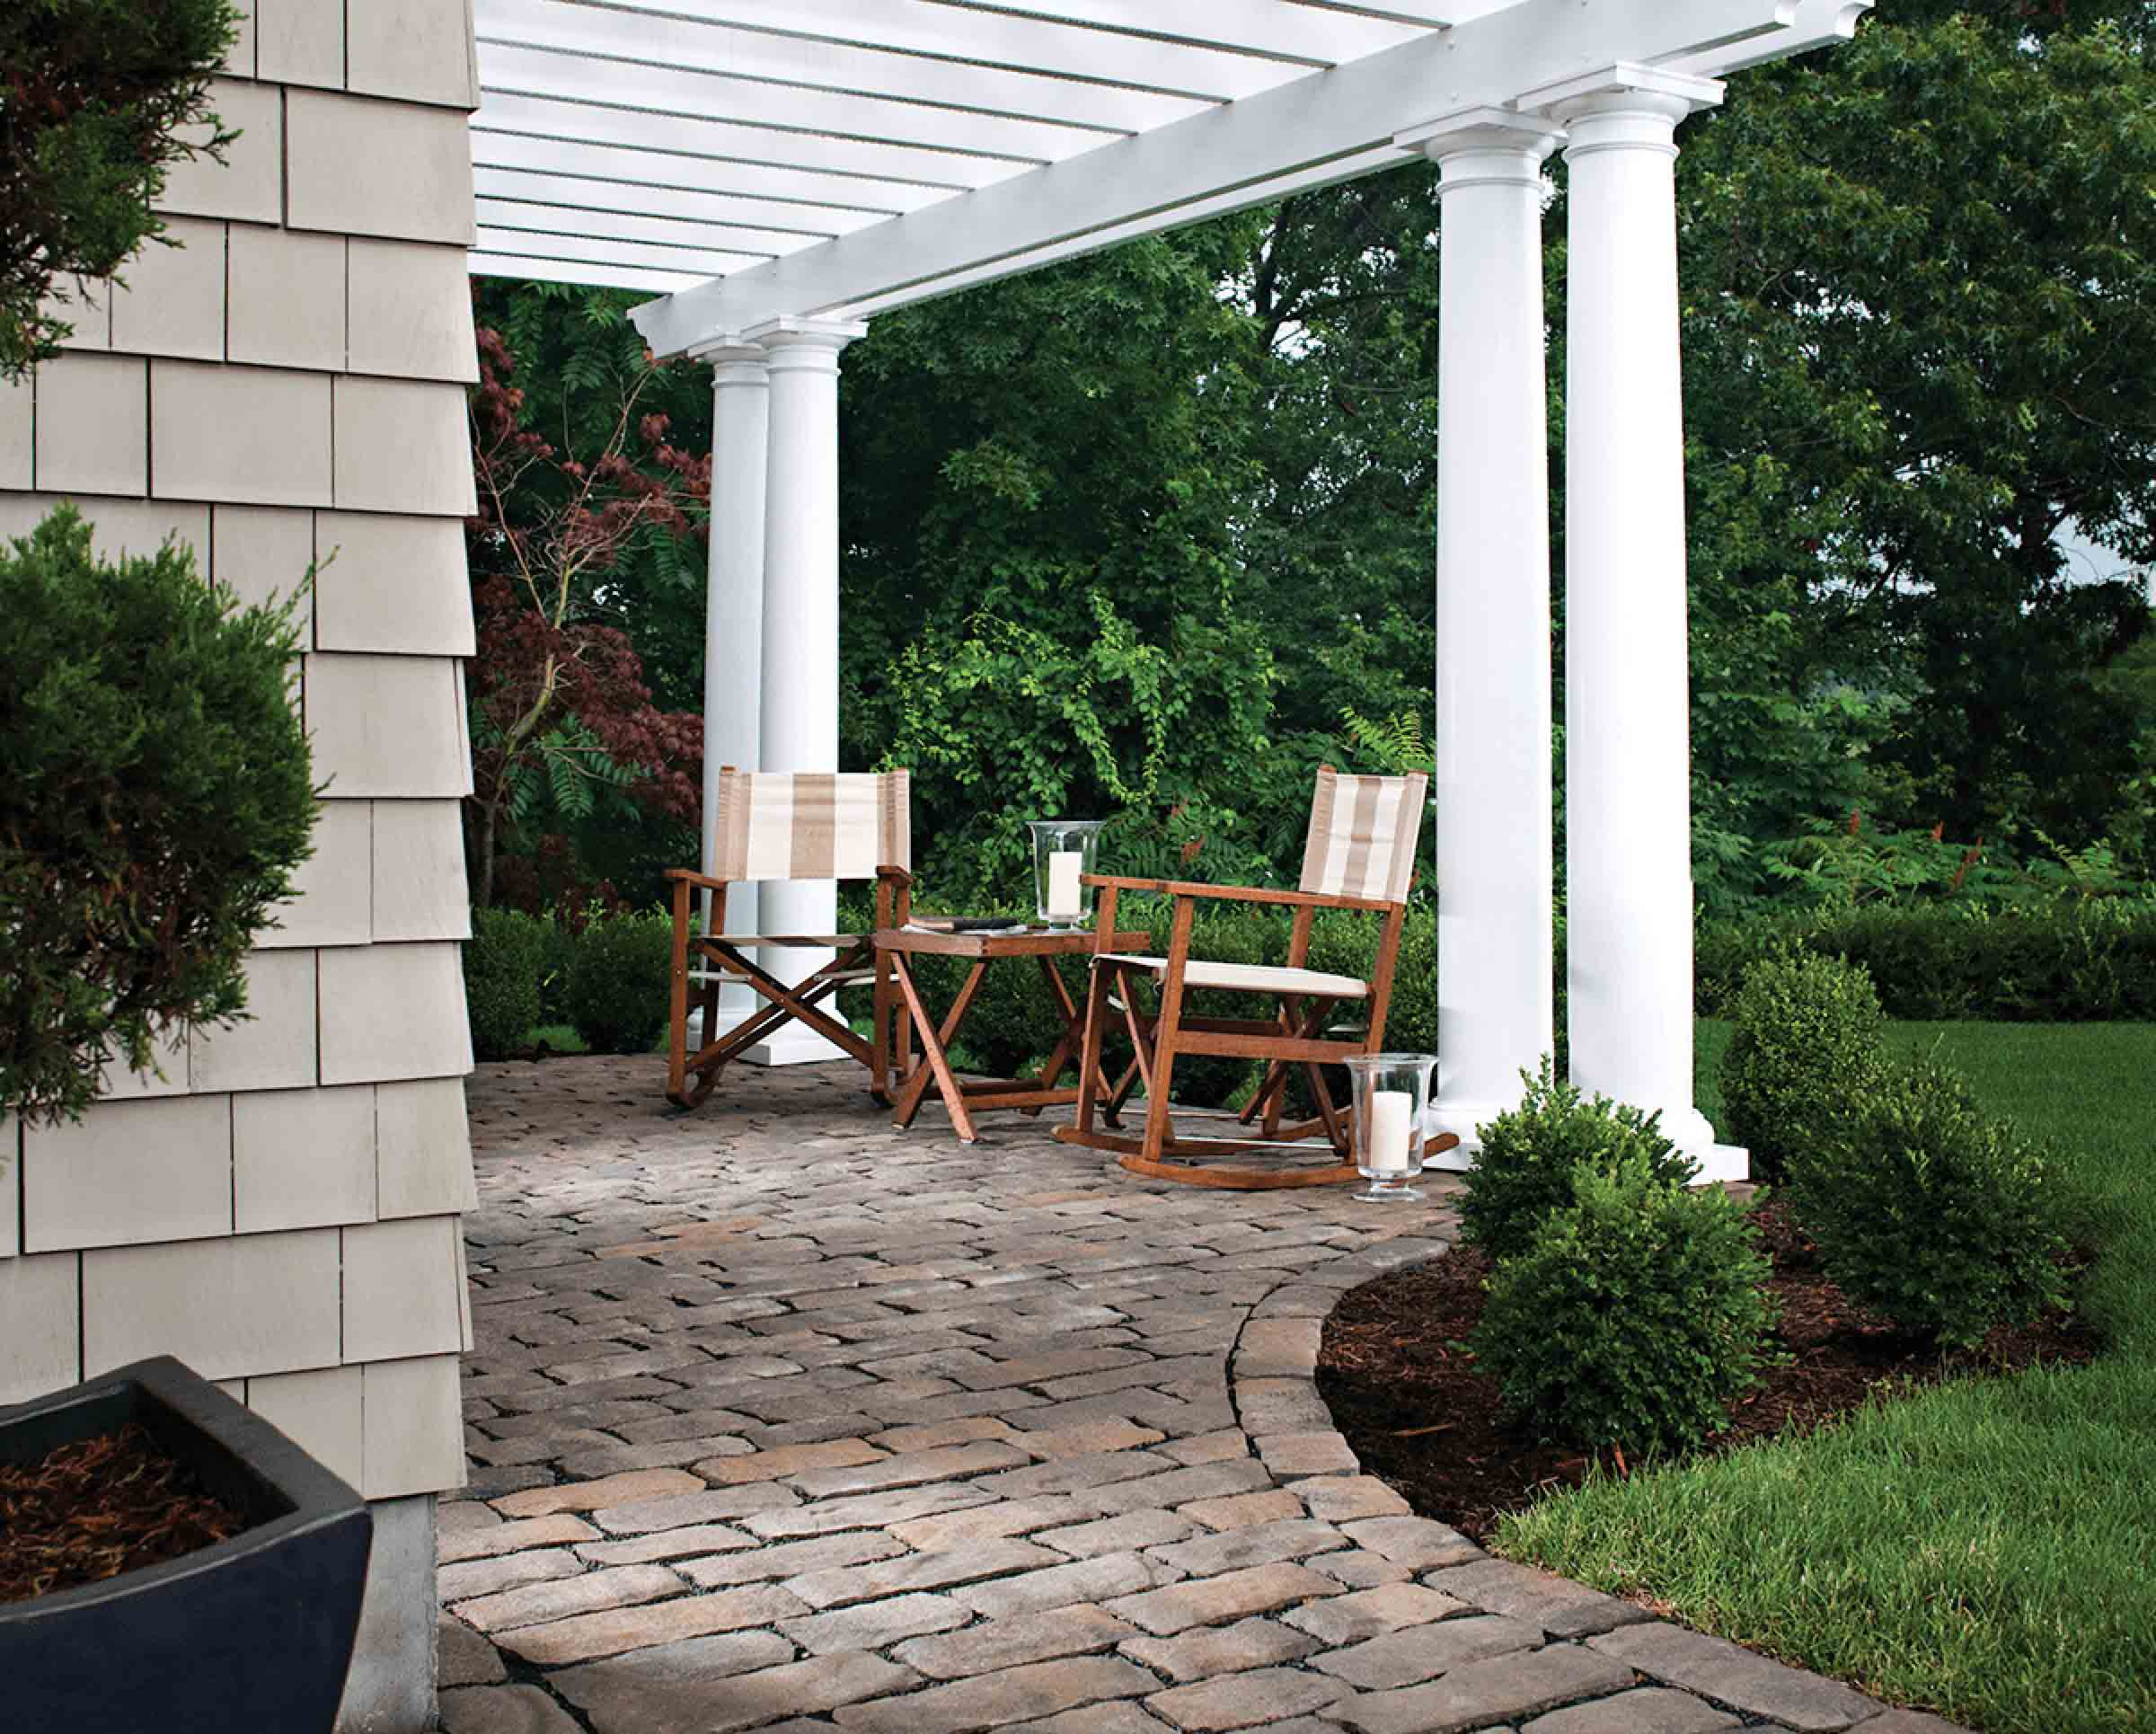 Benefits - Pavers Used For the Back Porch